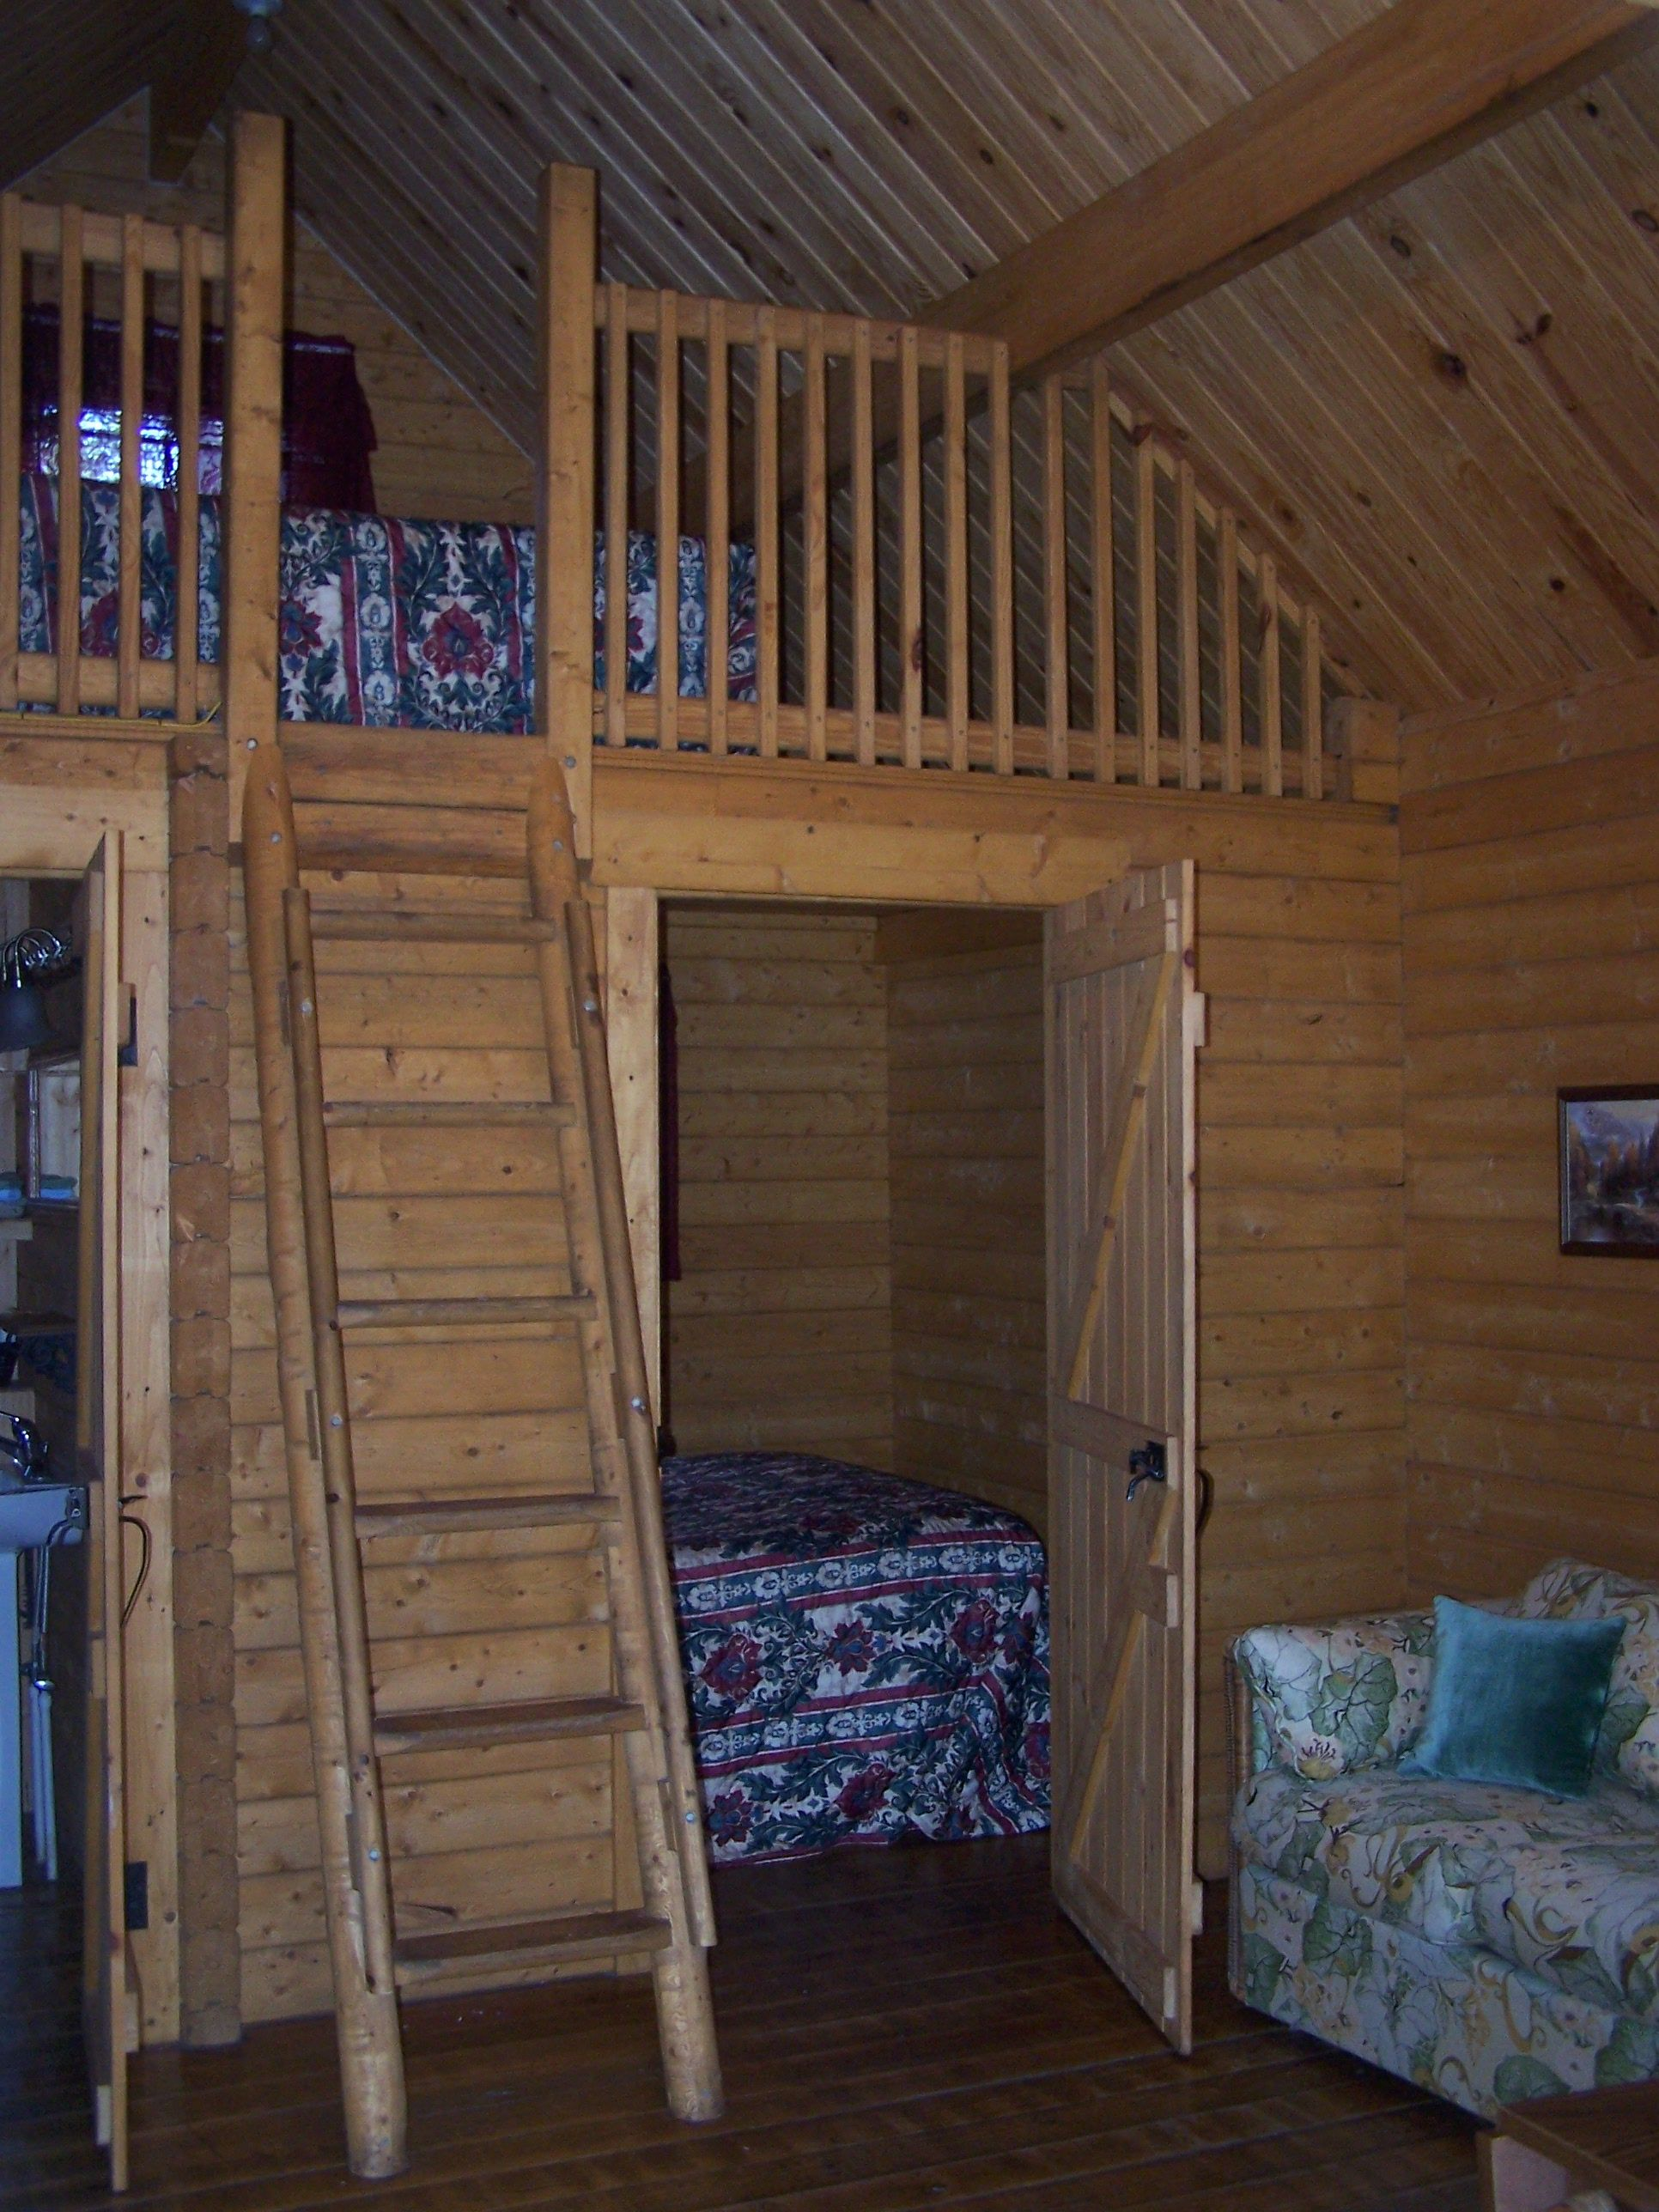 fort resort suite florida cabins rental pierce runner accommodation bedroom rentals travel cabin campsite rates road and